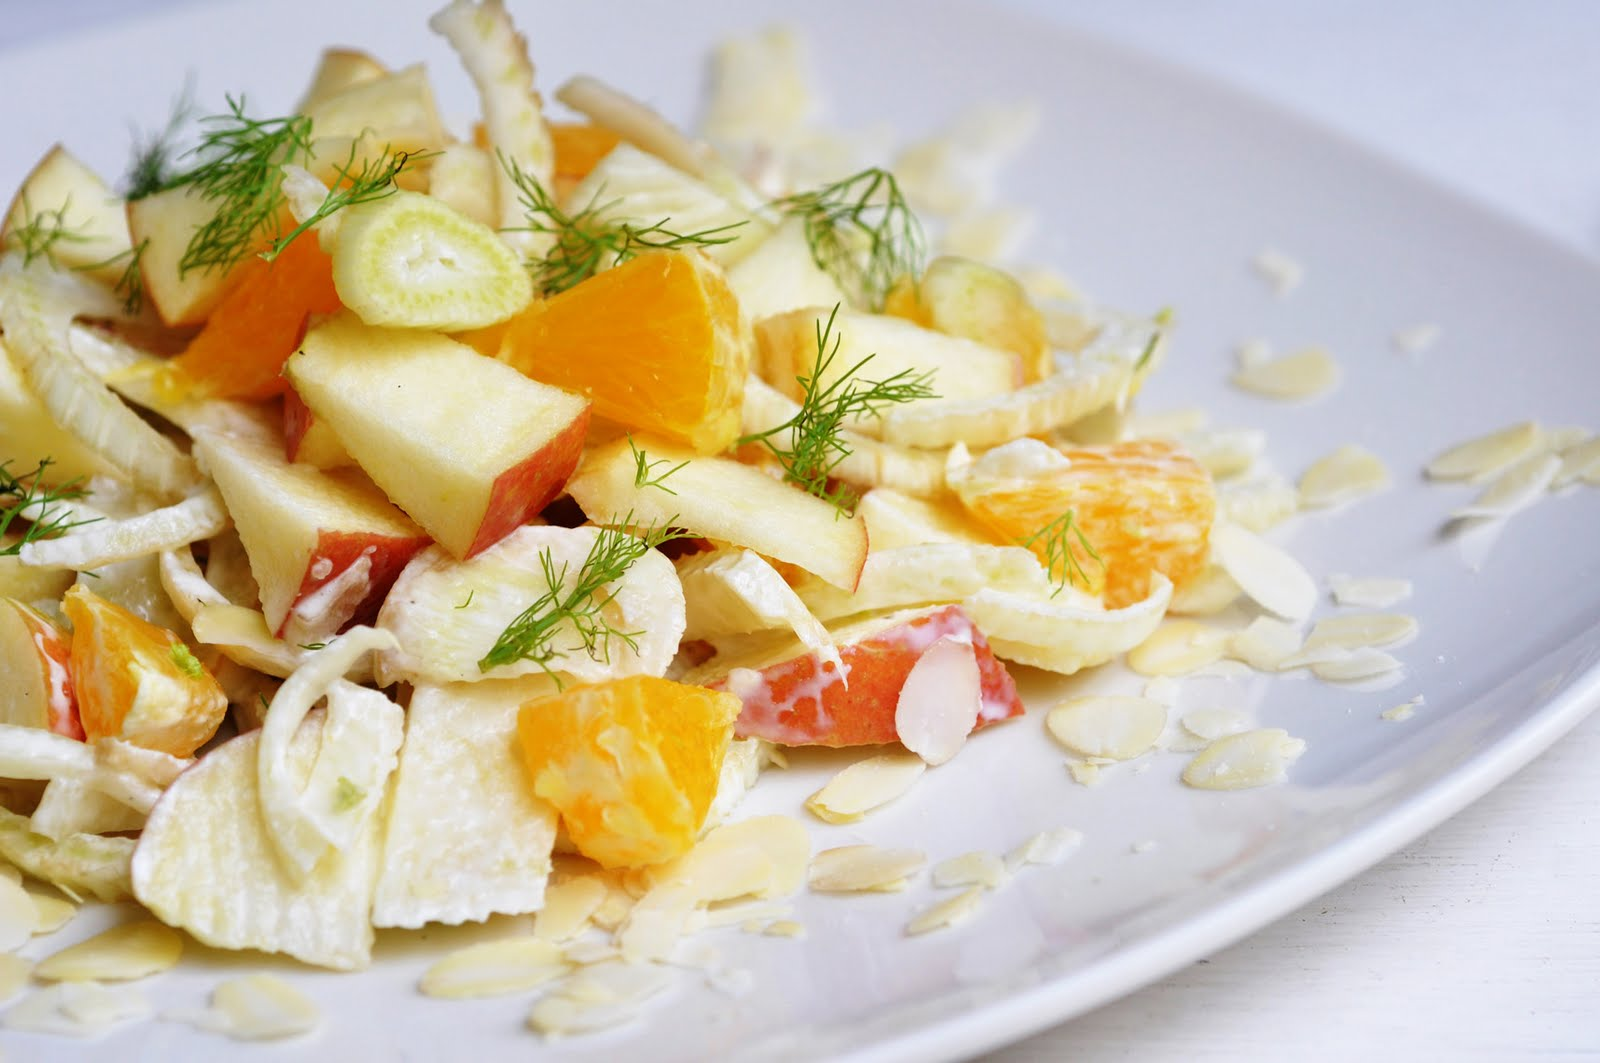 Fennel Salad with Apples and Oranges